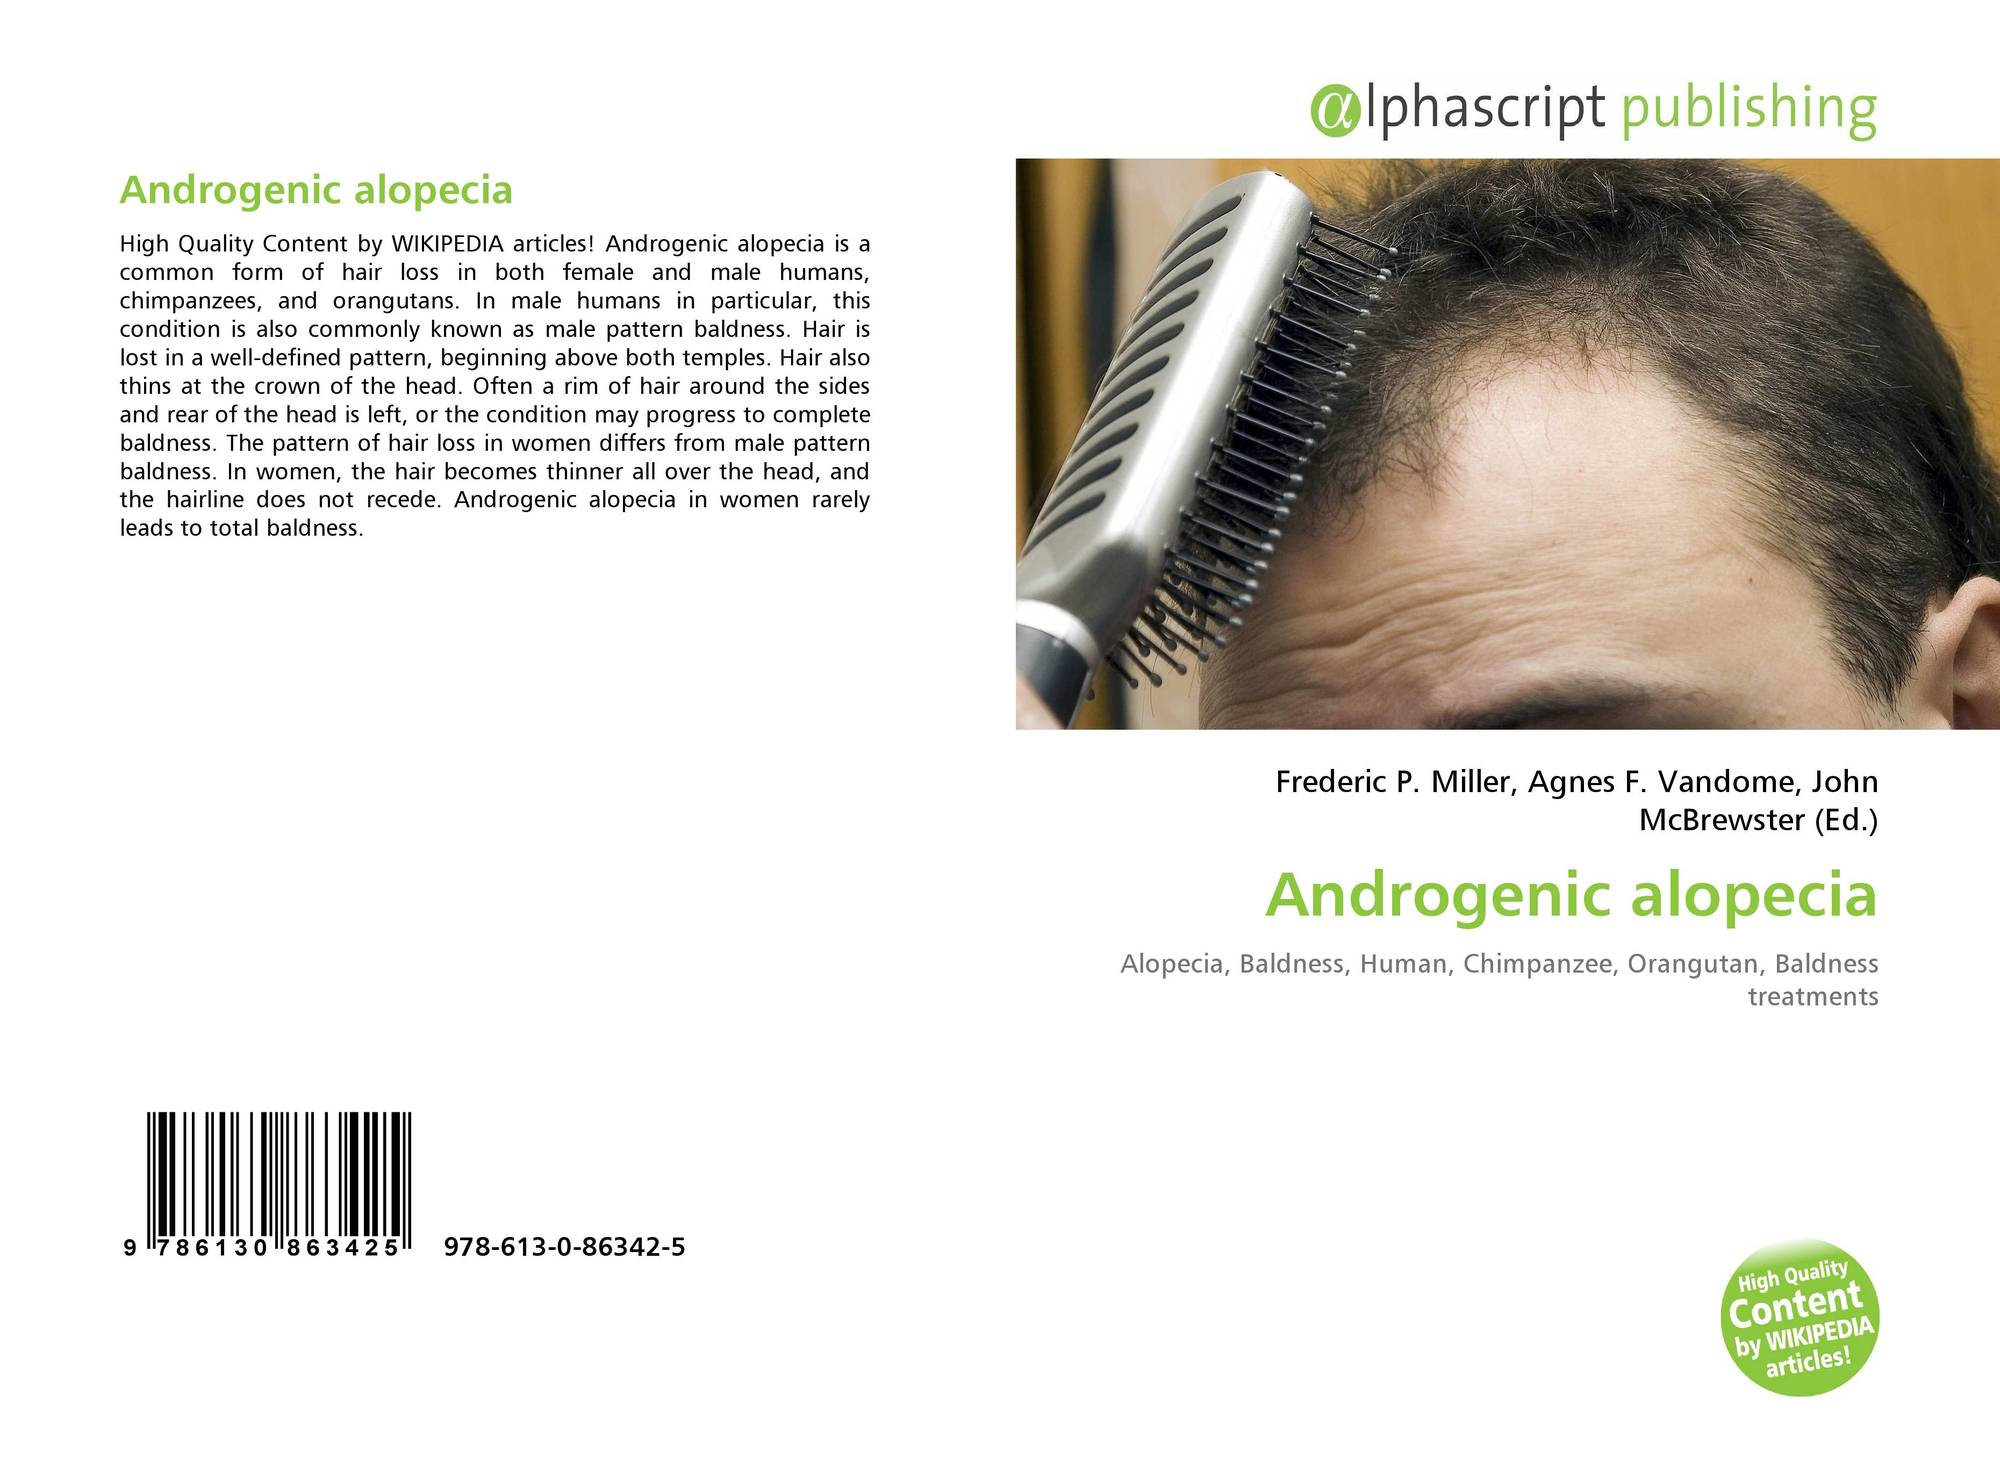 androgenetic alopecia essay Androgenic alopecia (aga mim 109200) is an androgen dependent hereditary disorder of hair with defined pattern of progressive hair thinning androgenetic alopecia also referred to as male pattern baldness (mpb) and as female pattern baldness (fpb) in men and women respectively.